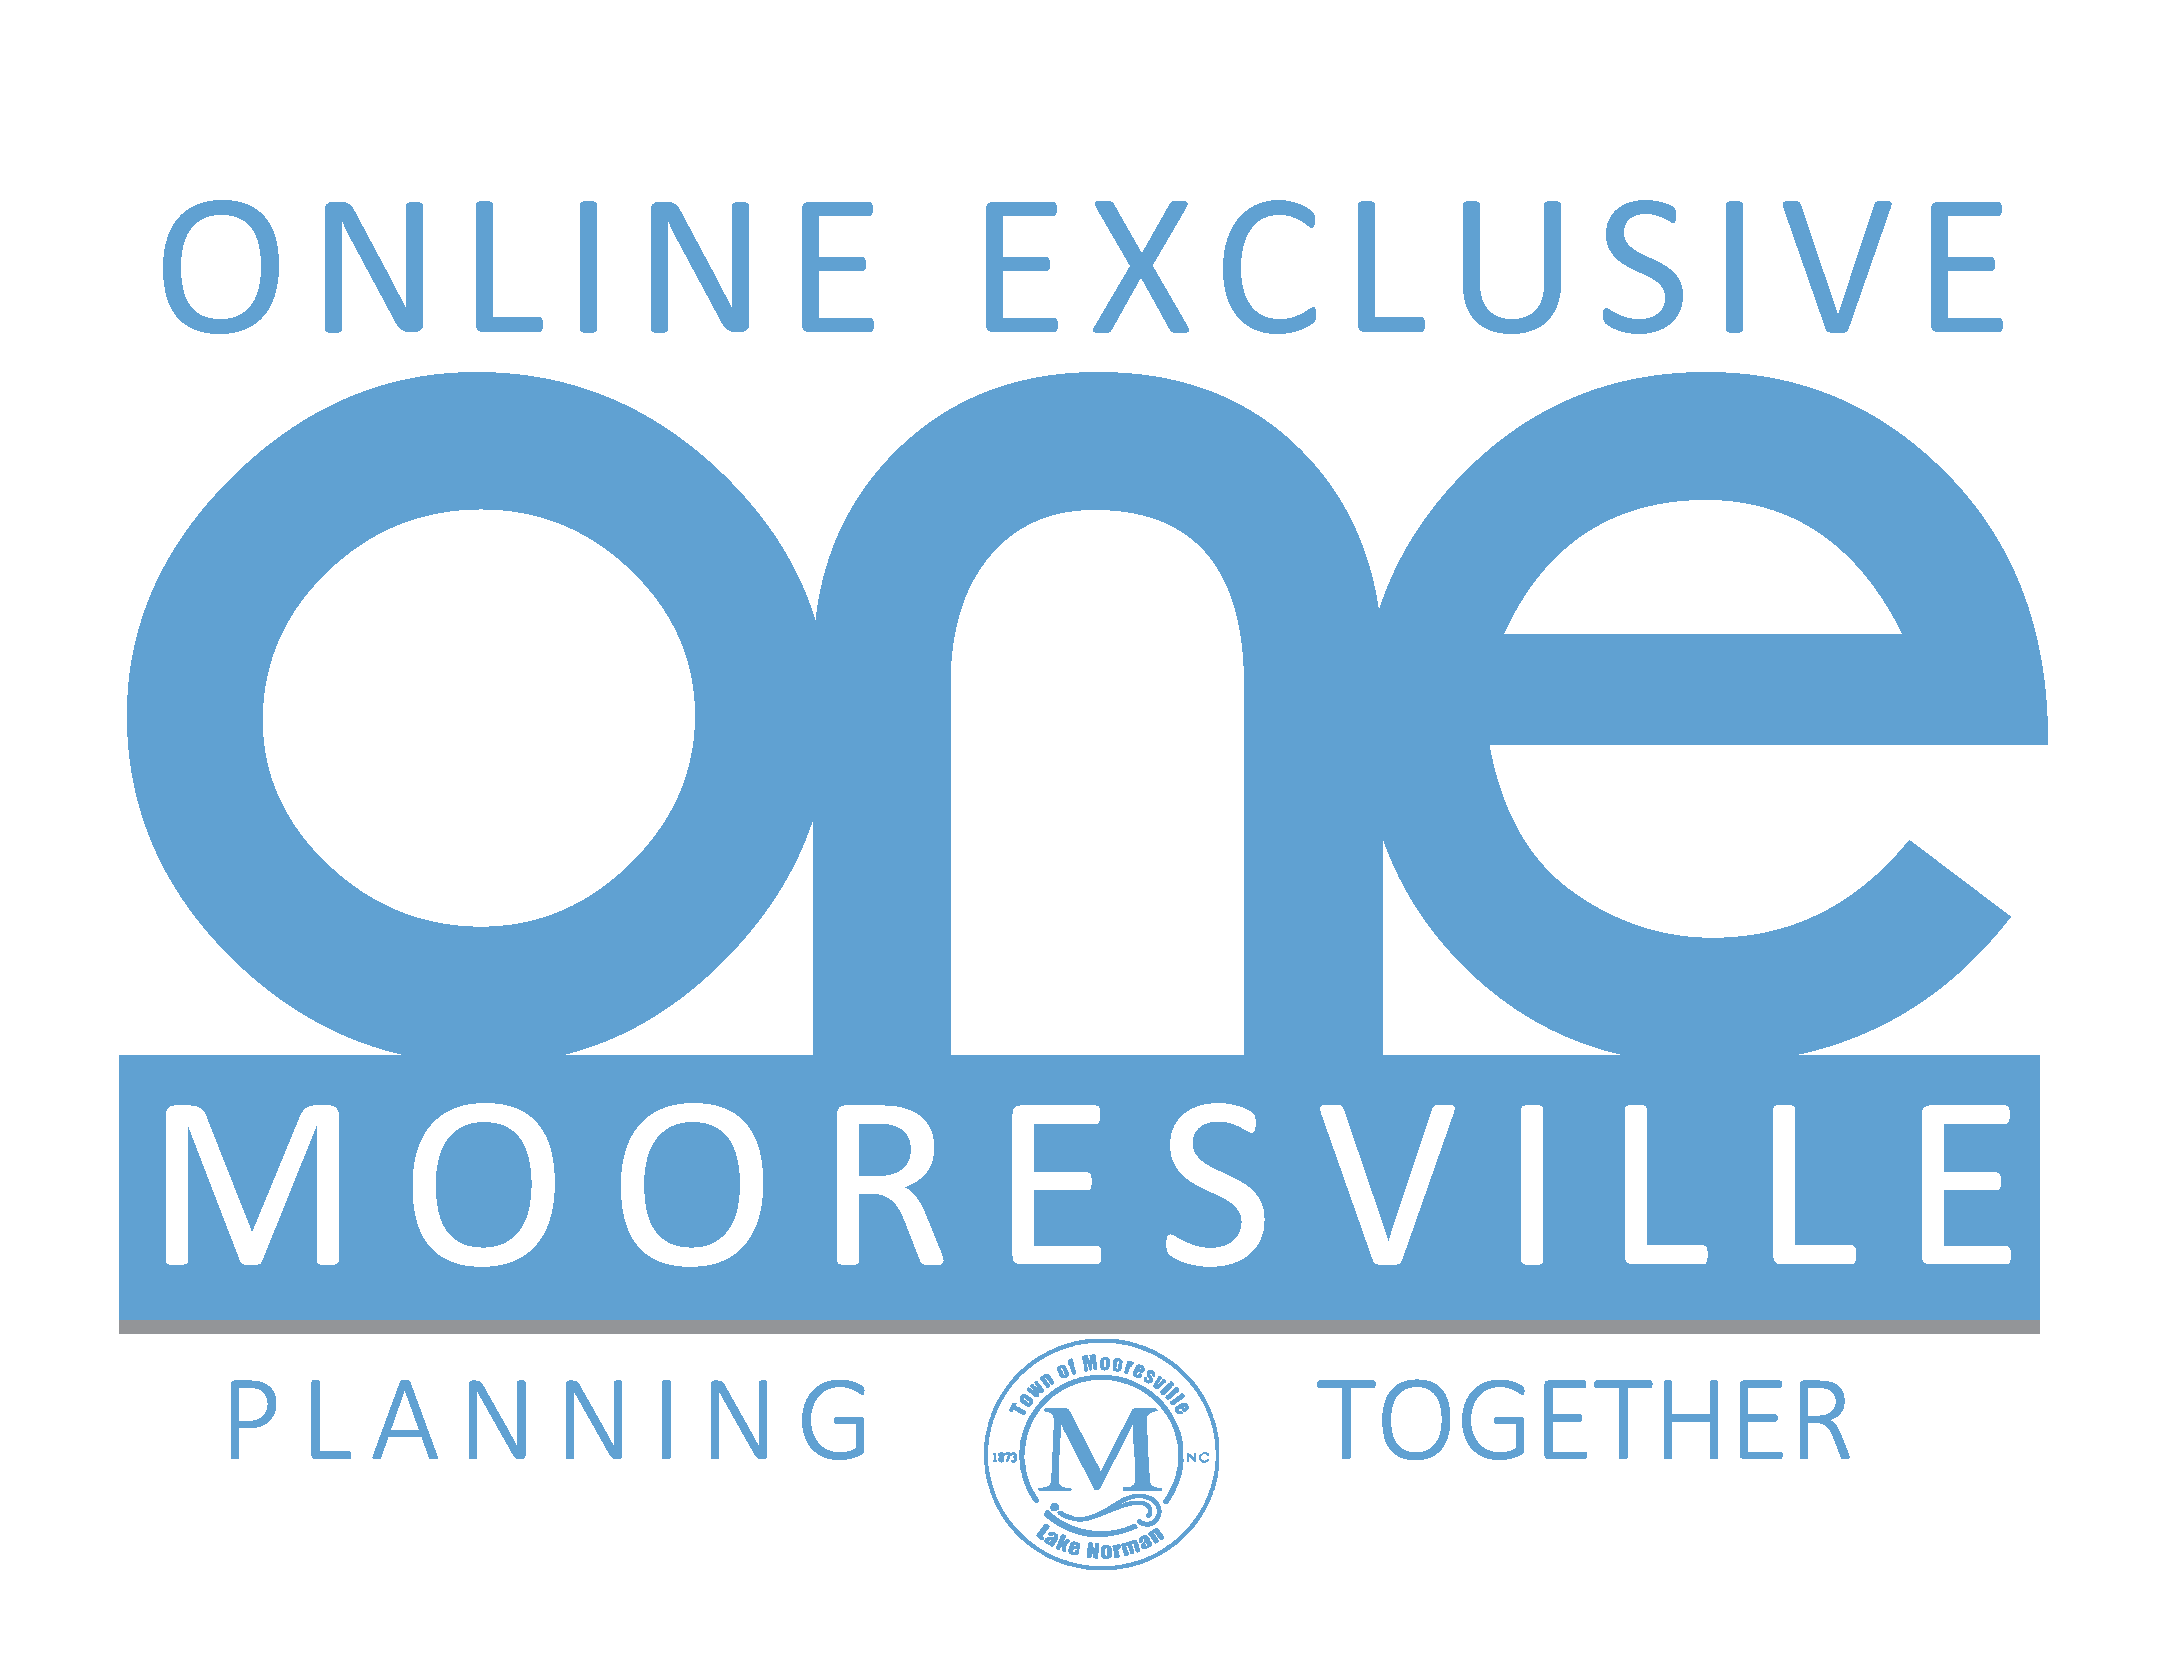 OneMooresville #5: What place do you consider to be a peer of Mooresville?